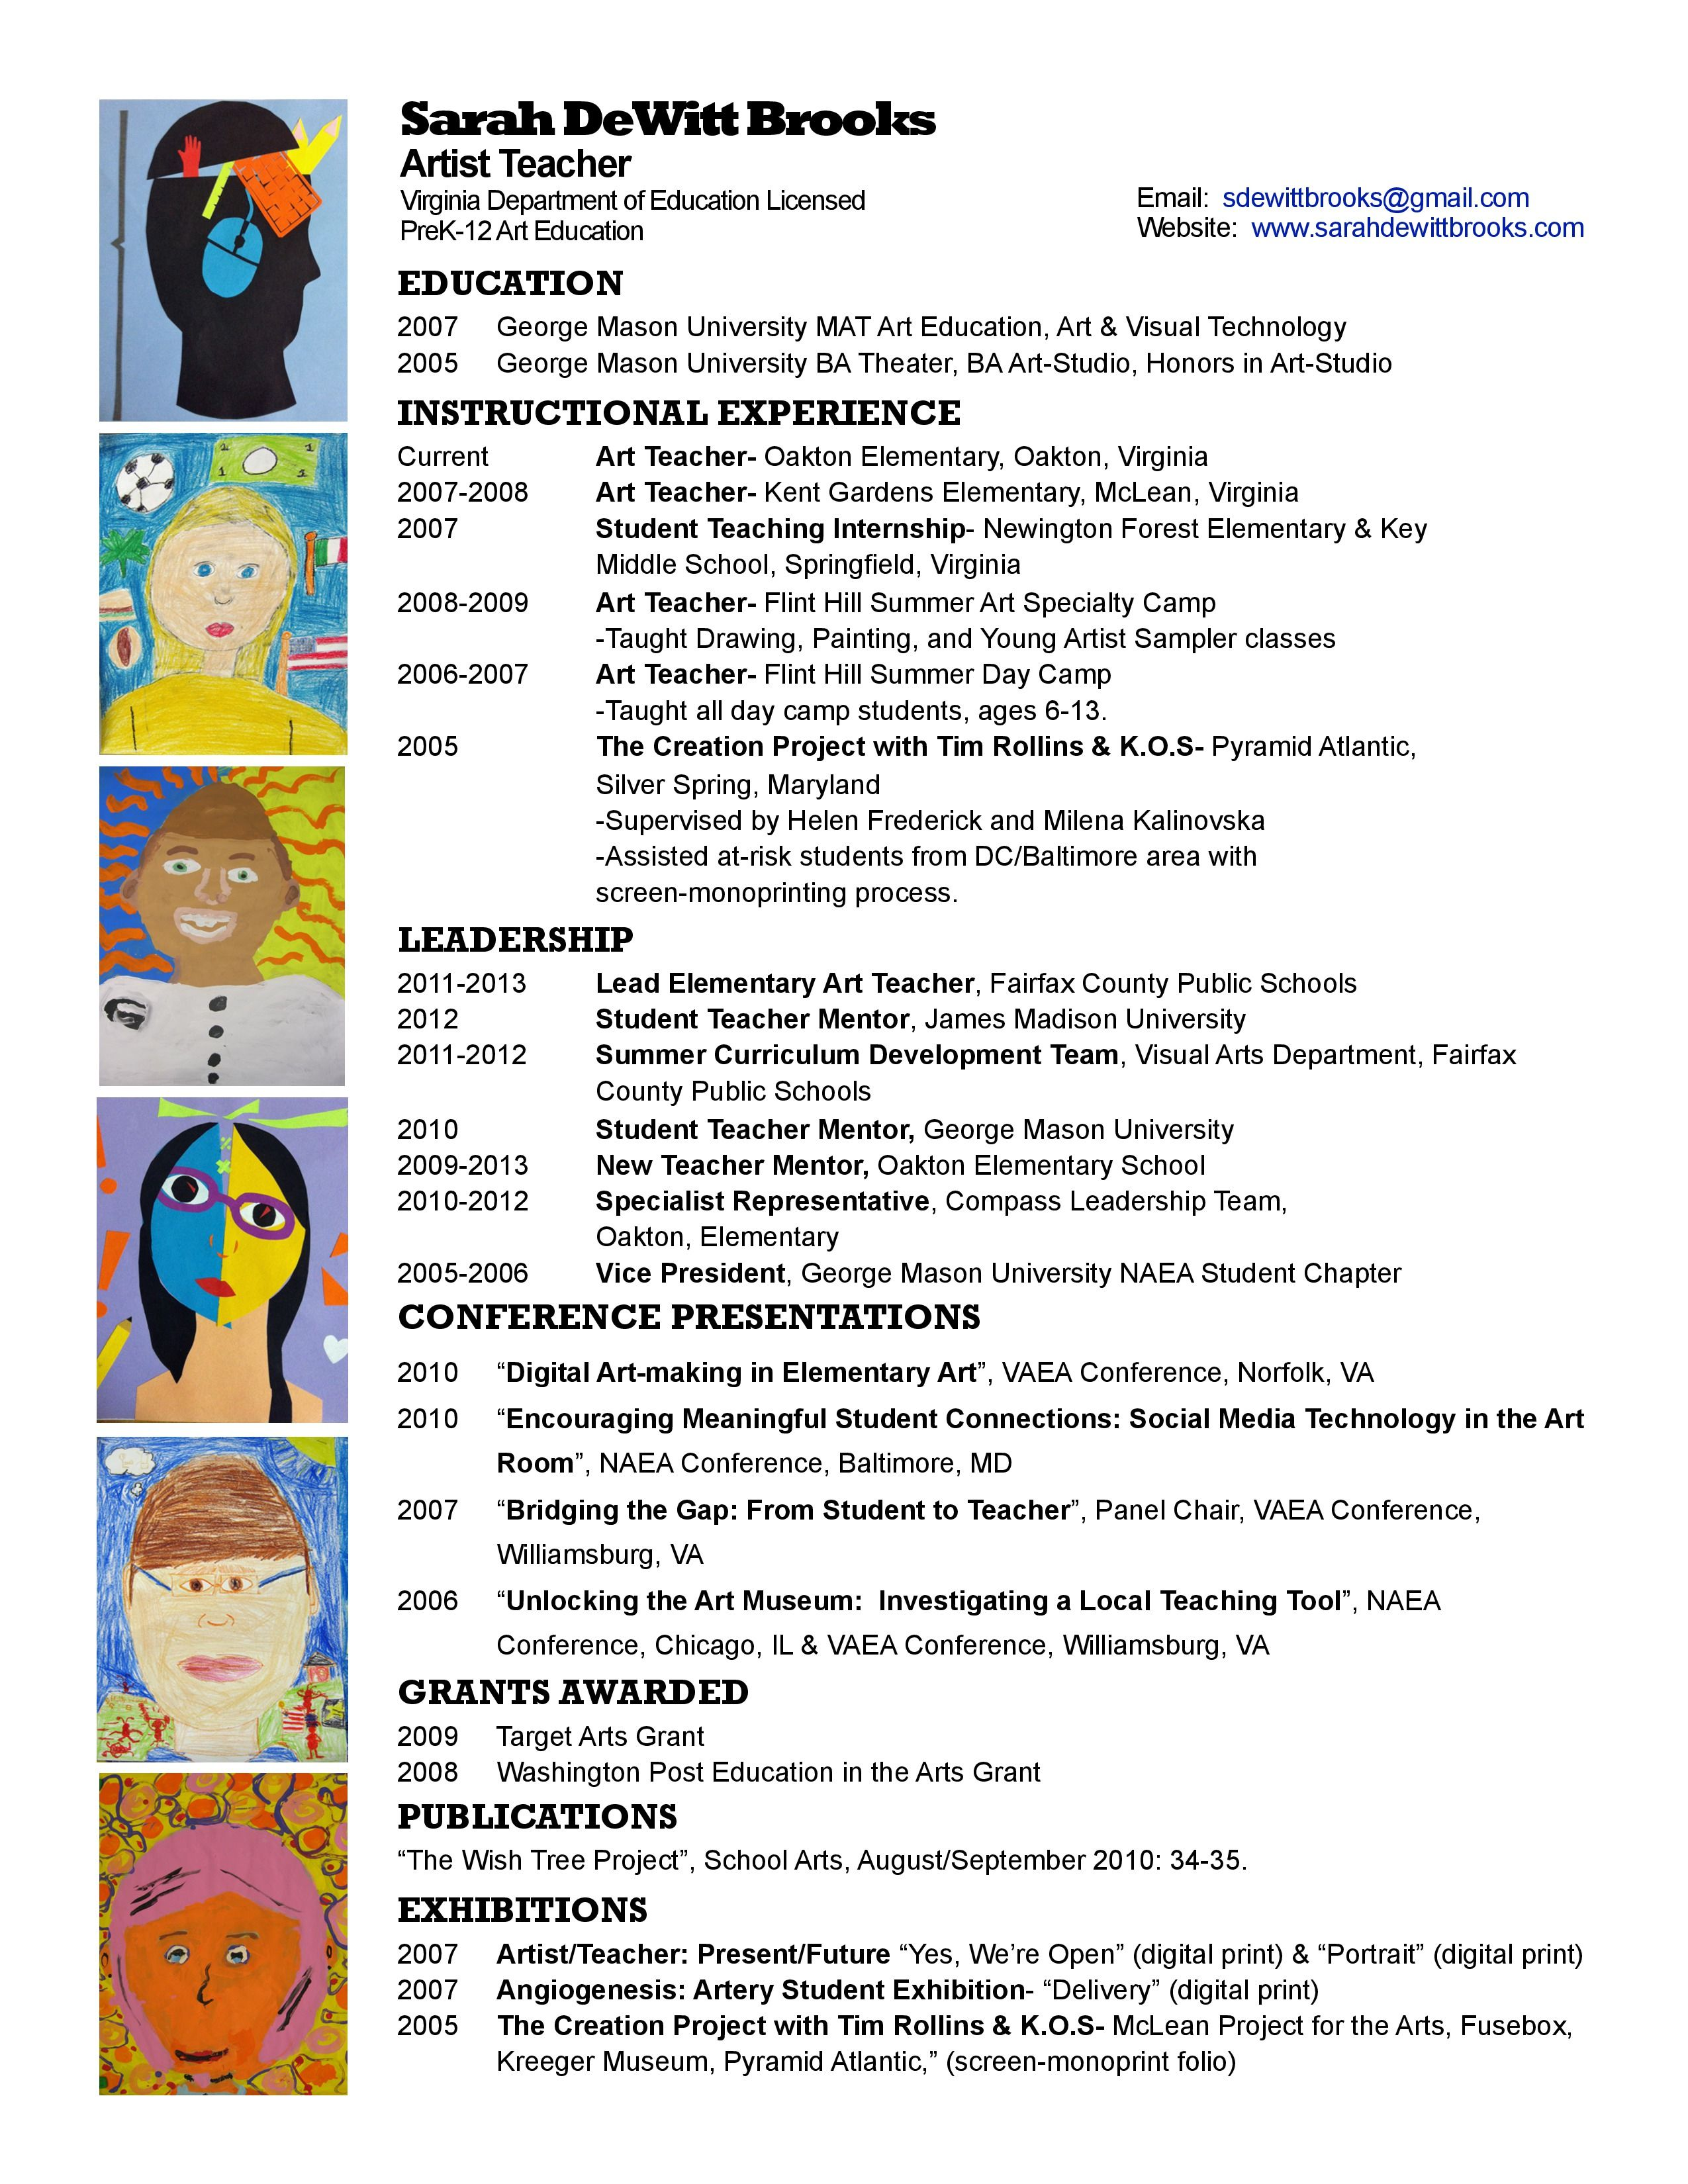 art teacher resume of art teacher resume examples latest resume art teacher resume of art teacher resume examples latest resume high school art teacher resume